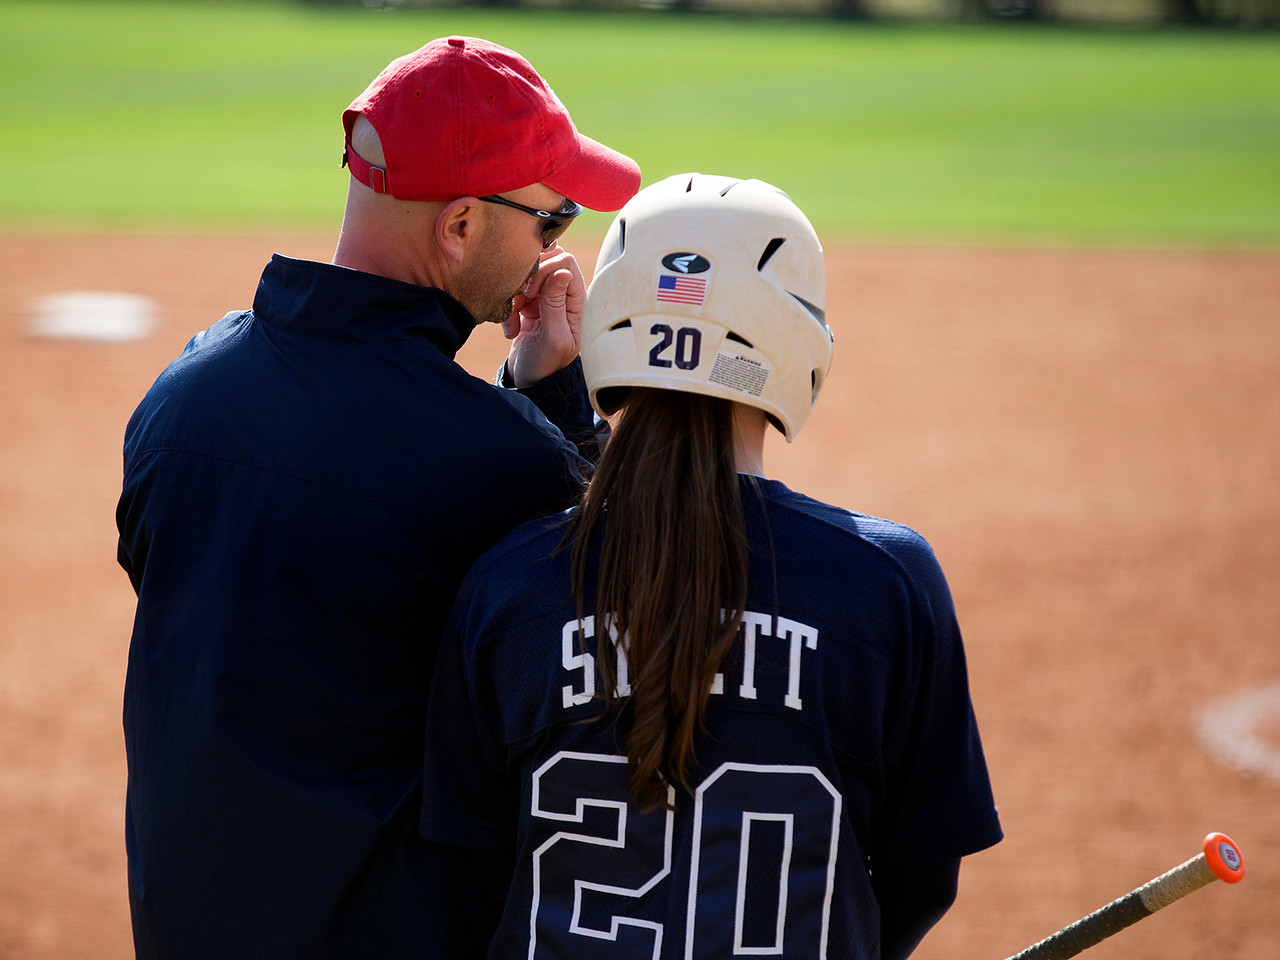 Ole Miss Softball vs Fordham during the first game of the 2014 College of Charleston Classic in Charleston, SC.